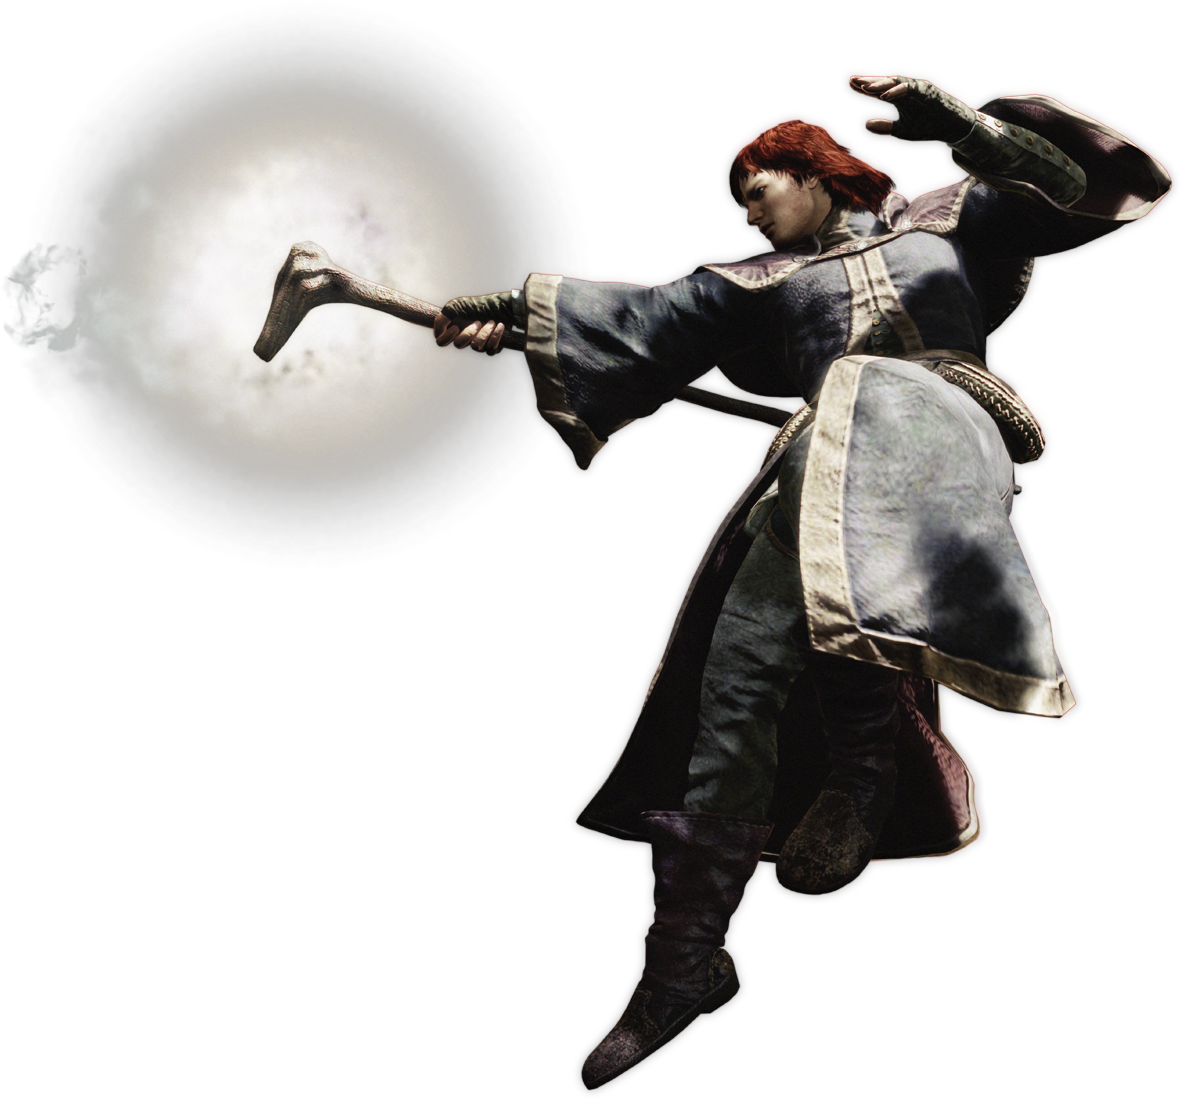 http://images.wikia.com/dragonsdogma/images/0/0d/DD_Action_Mage.png